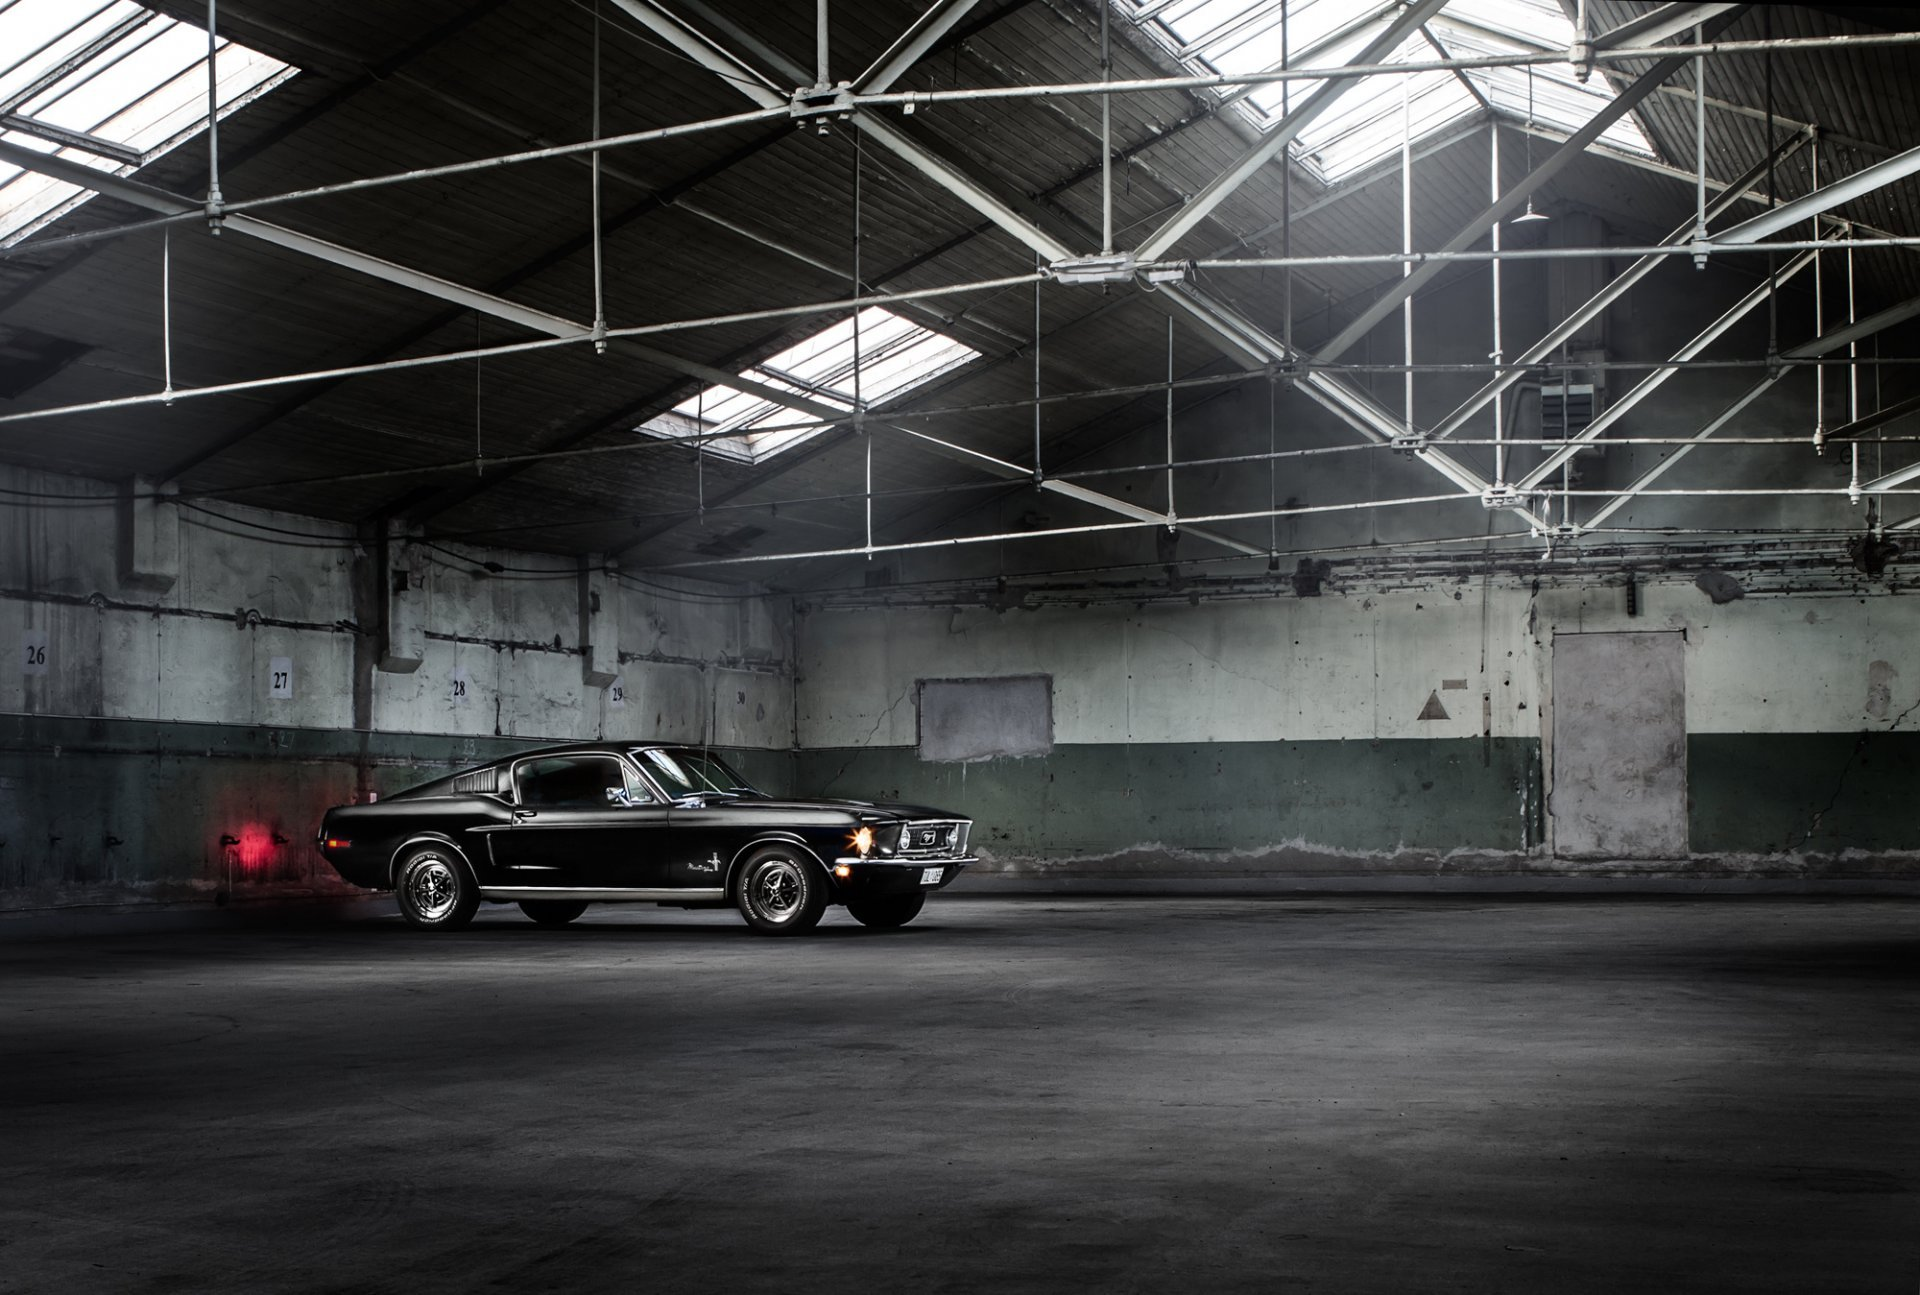 ford mustang fastback classic muscle car black warehouse HD wallpaper